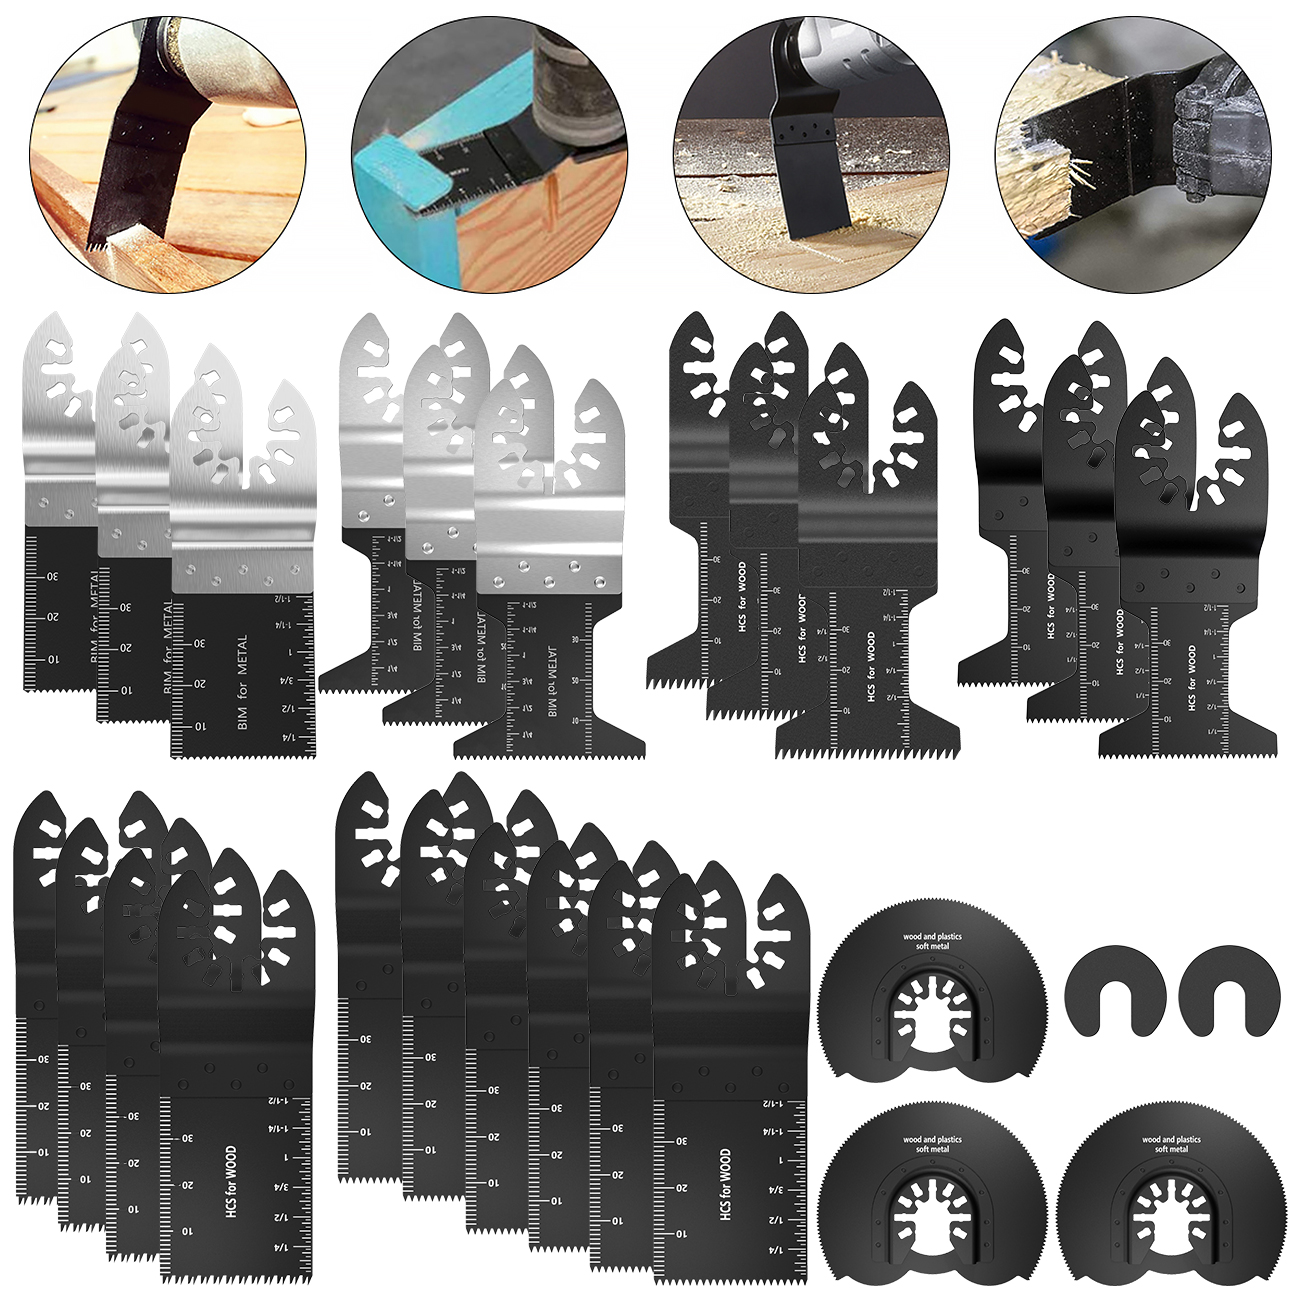 27Pcs Multi-Function Bi-metal Precision Saw Blade Oscillating Multitool Saw Blade For Renovator Power Cutting Multimaster Tools